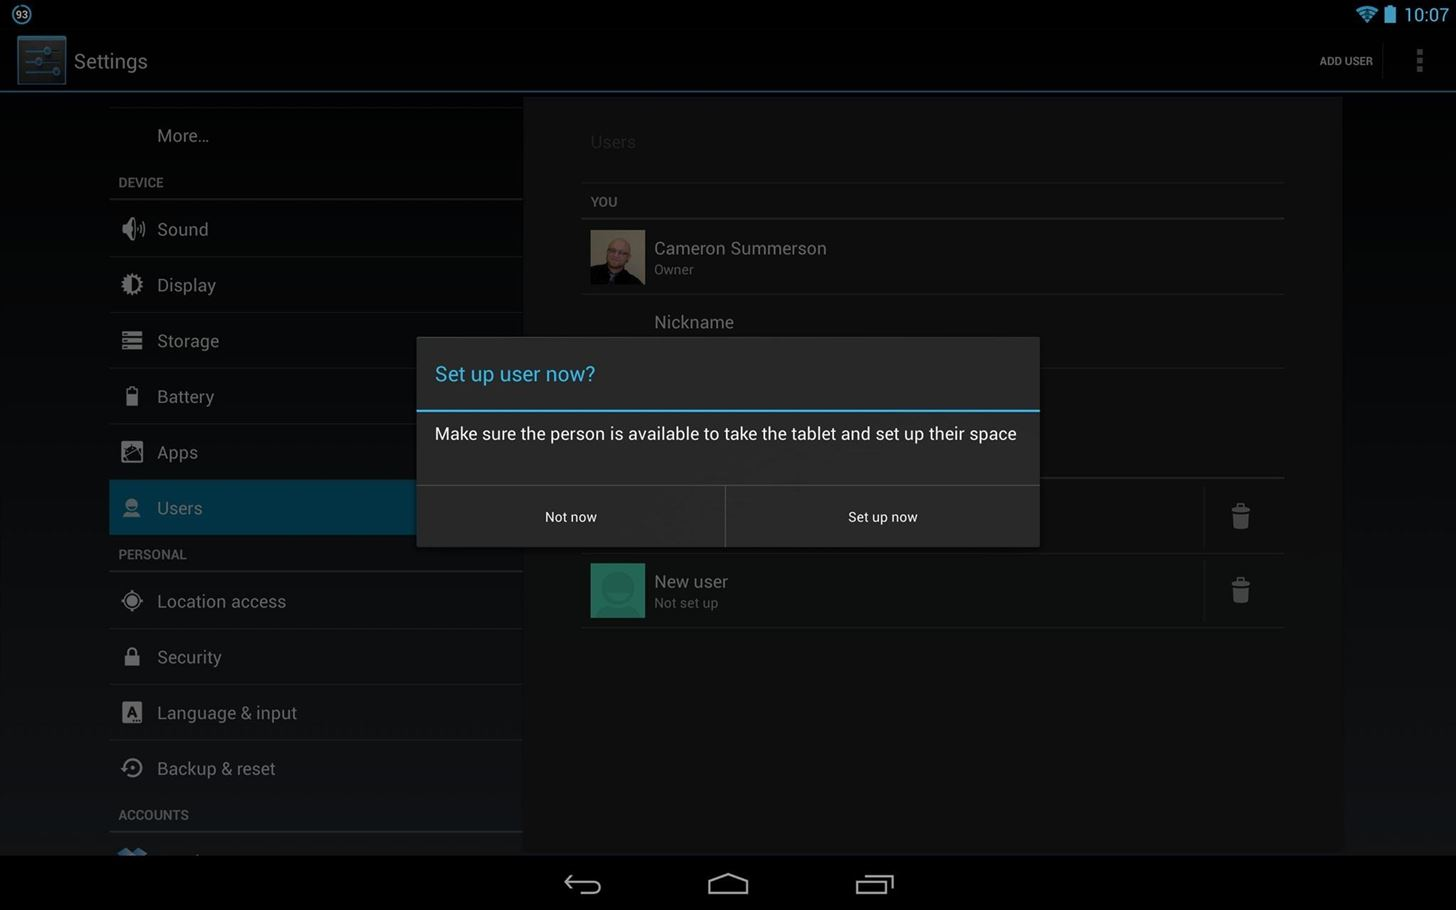 How to Set Up Multiple Users on Your Android Jelly Bean 4.2 Tablet